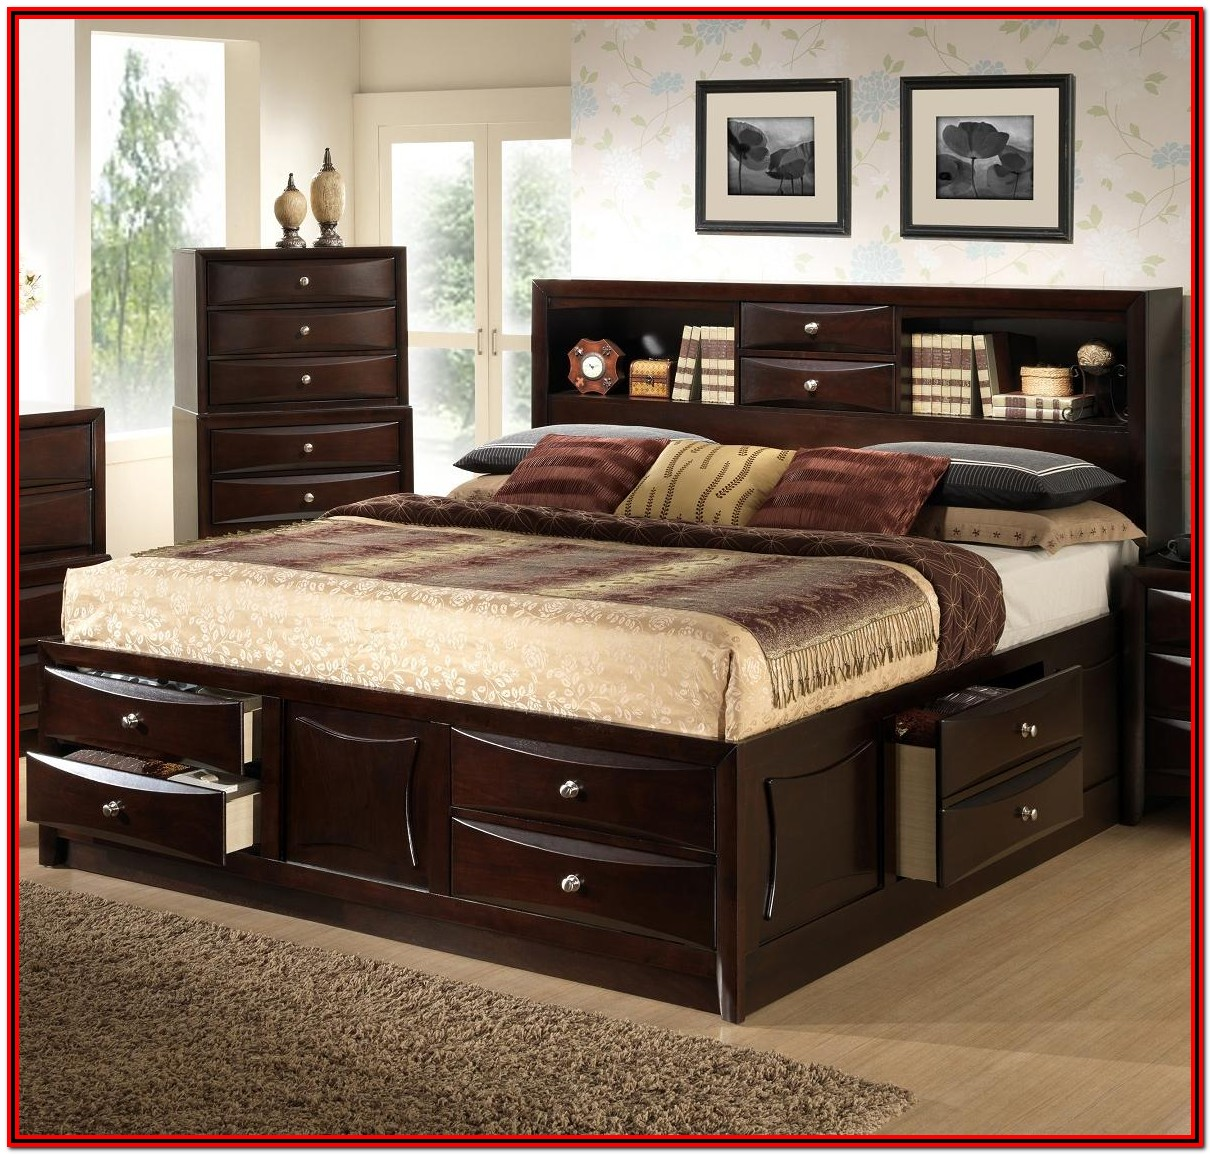 Bed Frame With Headboard And Storage